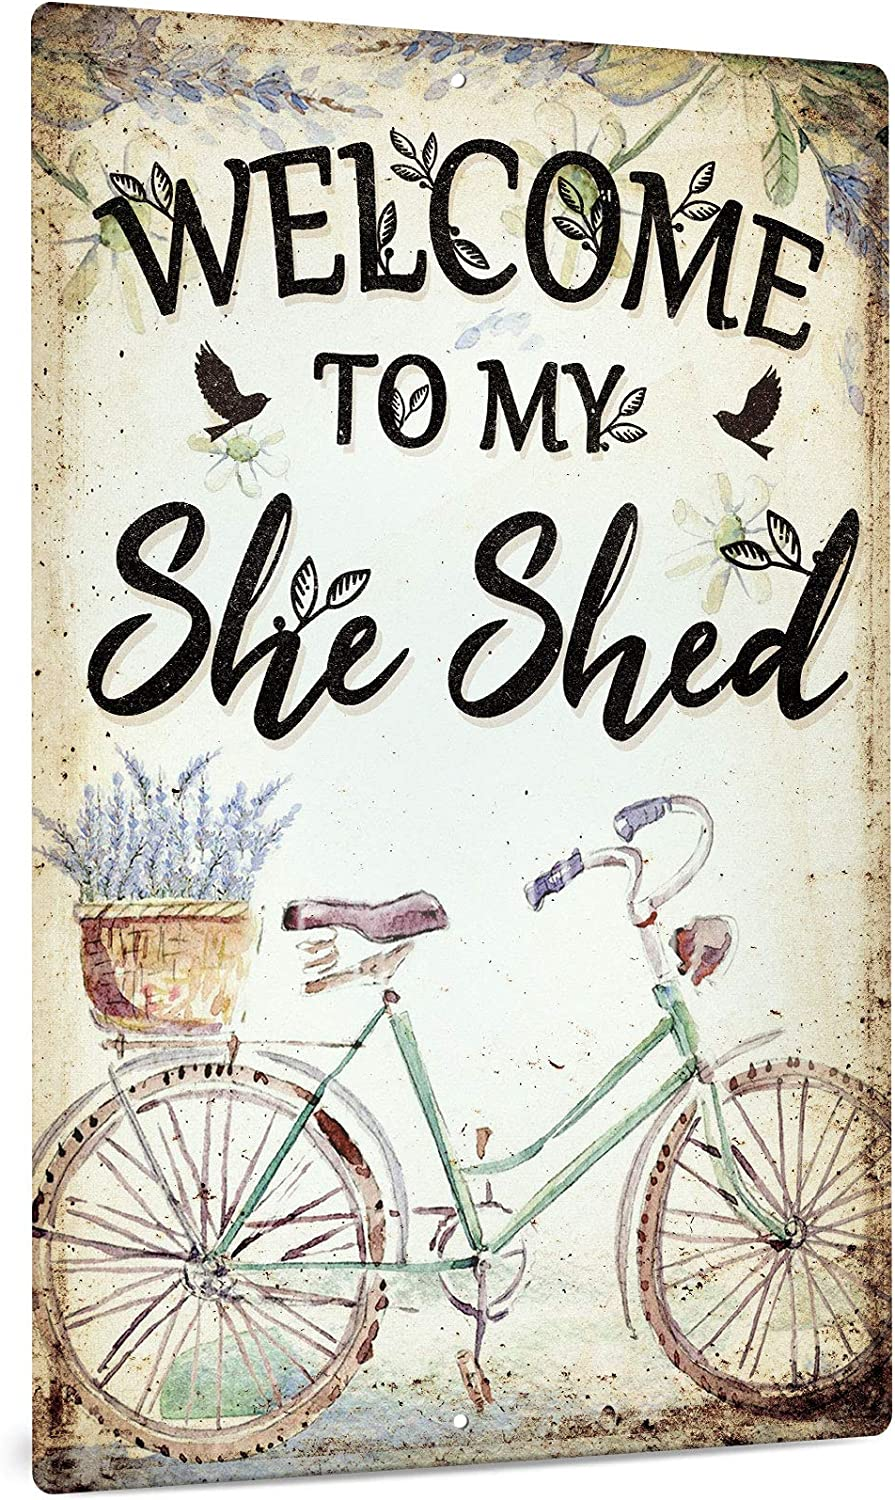 Putuo Decor She Shed Decor, Farmhouse Wall Sign for Home, Kitchen, Garden, Women Cave, Gift for Girlfriend, Ladies, 12x8 Inches Aluminum Metal Sign - Welcome to My She Shed